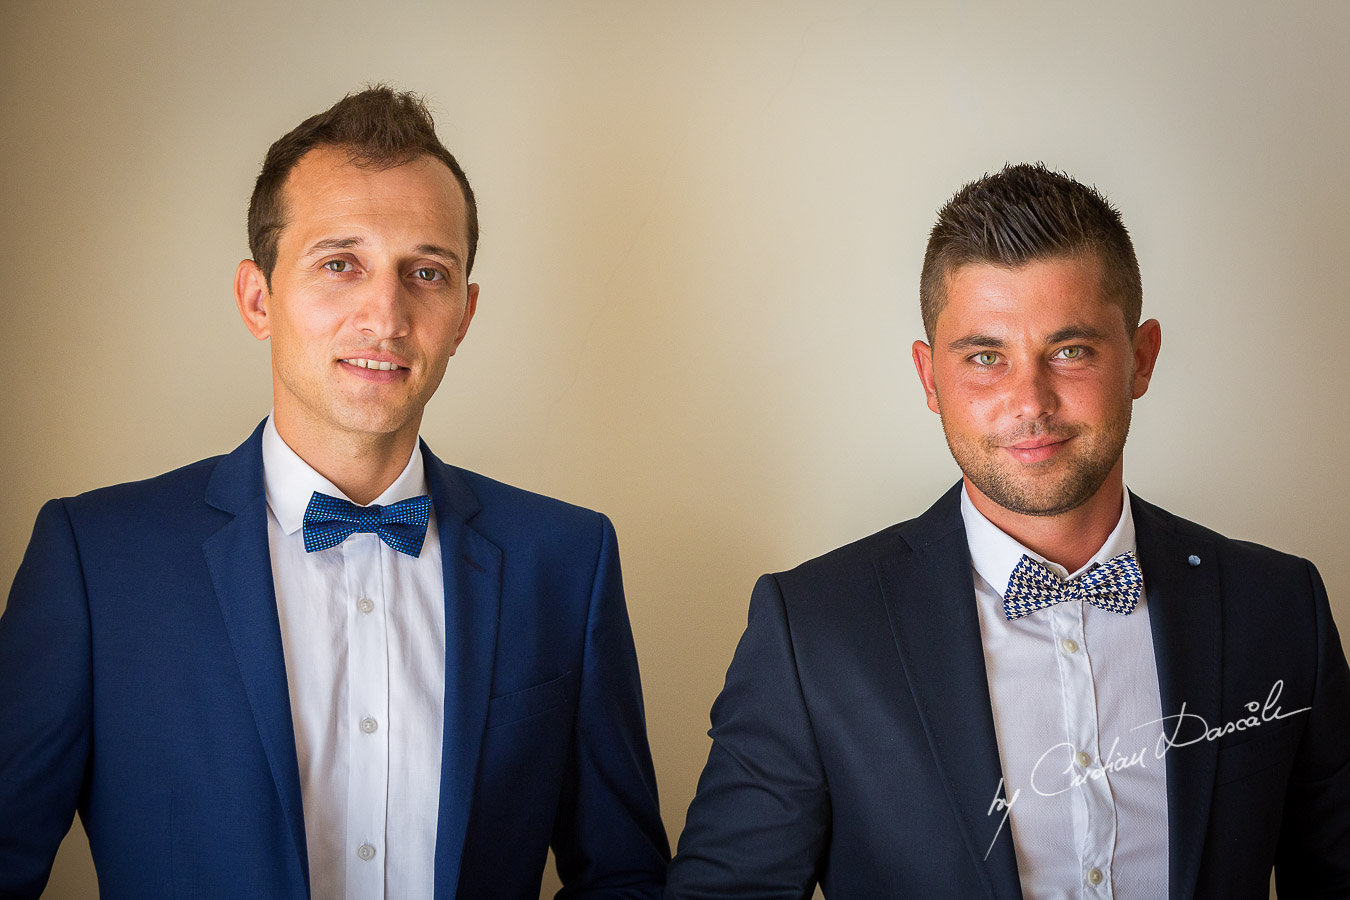 Groom and best man at Elias Beach Hotel in Limassol